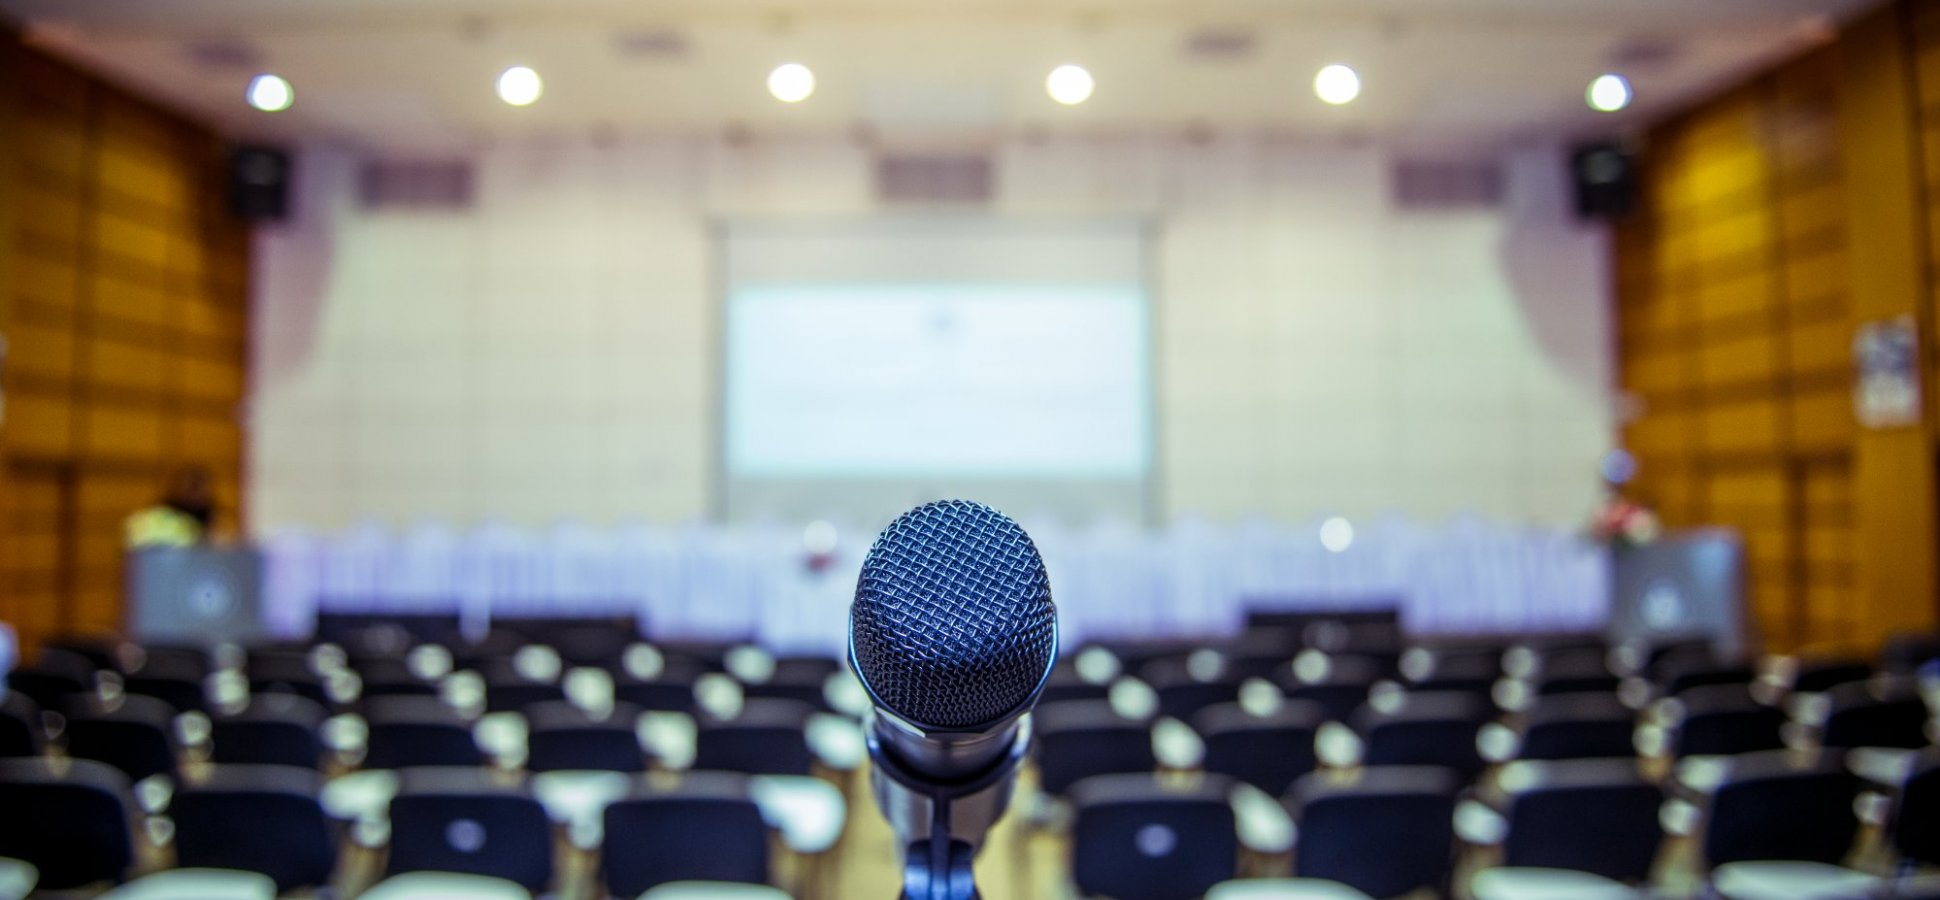 Want to Consistently Book Gigs as a Speaker? Add These 3 Things to Your Marketing